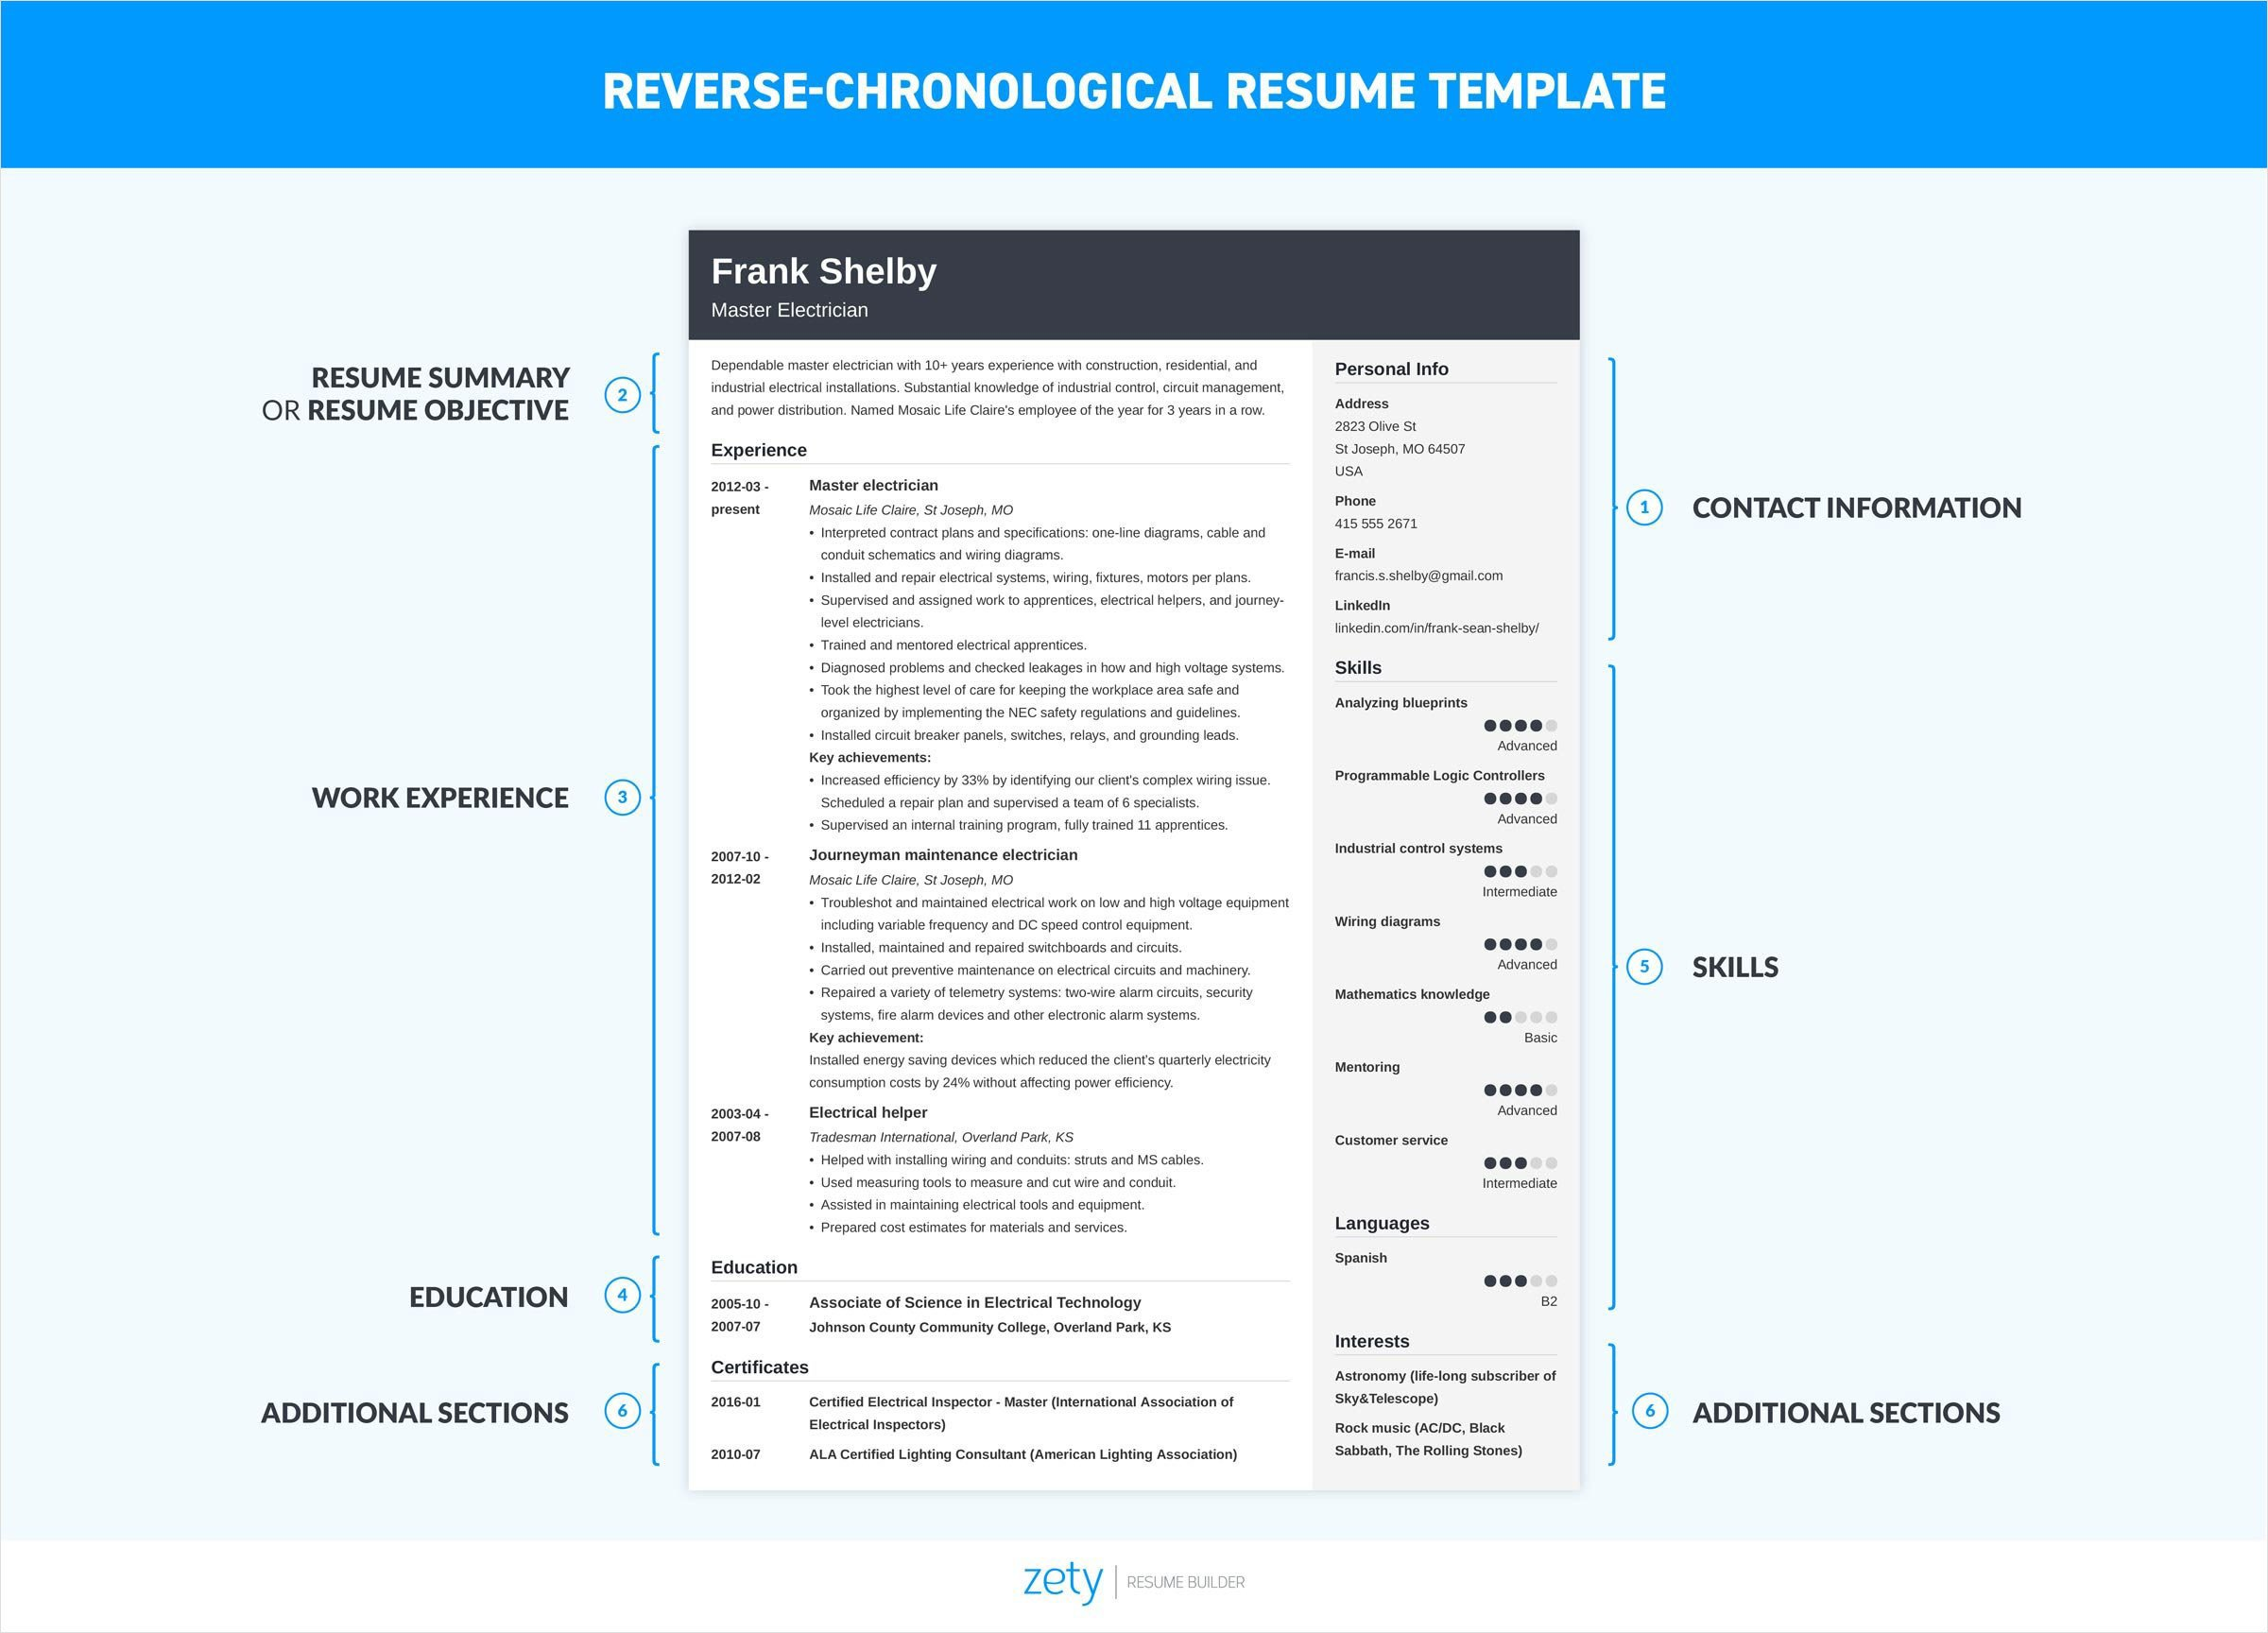 How To Make A Resume Using The Reverse Chronological Format